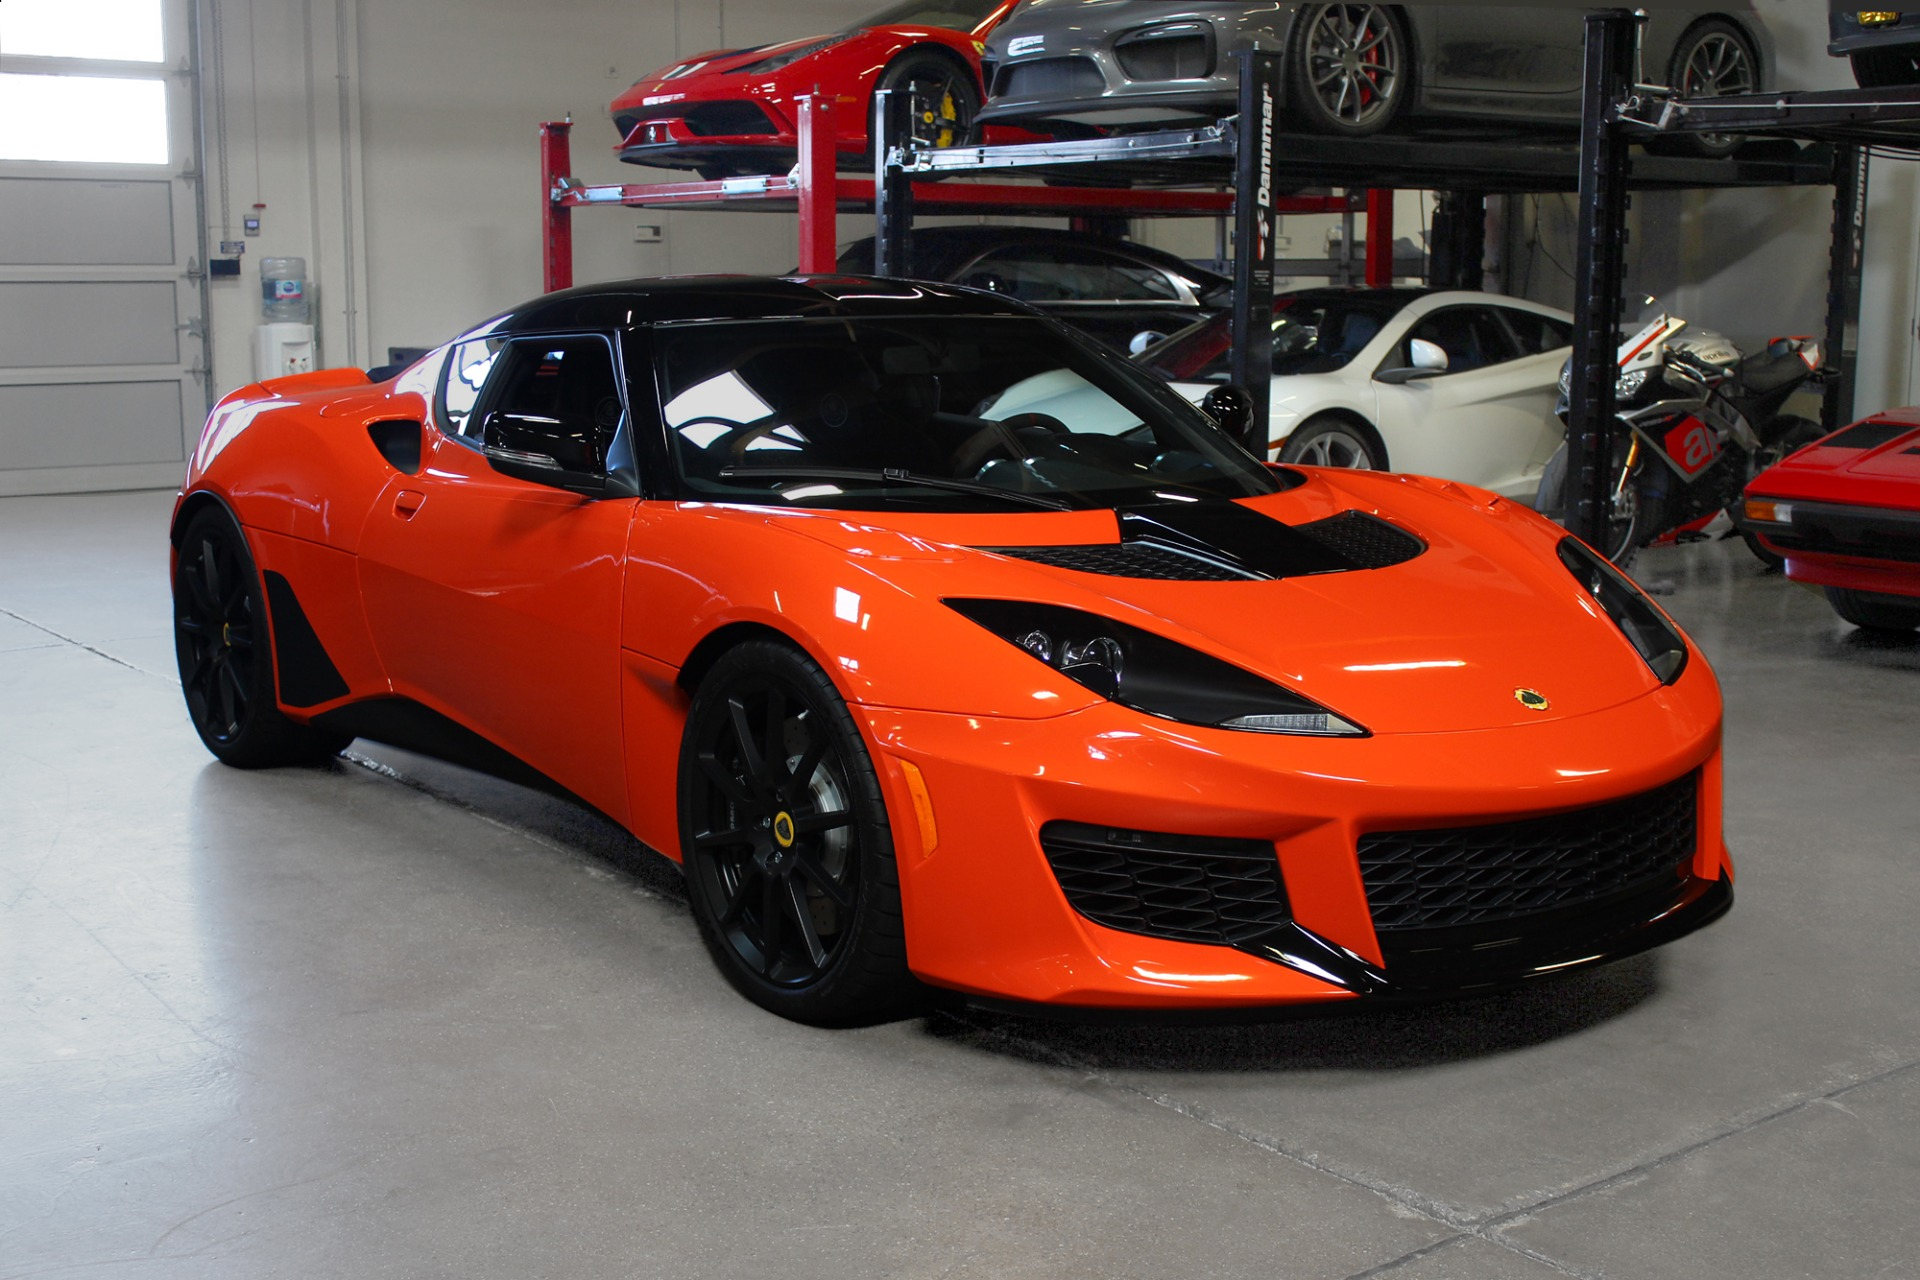 New 2020 Lotus Evora GT for sale Sold at San Francisco Sports Cars in San Carlos CA 94070 1